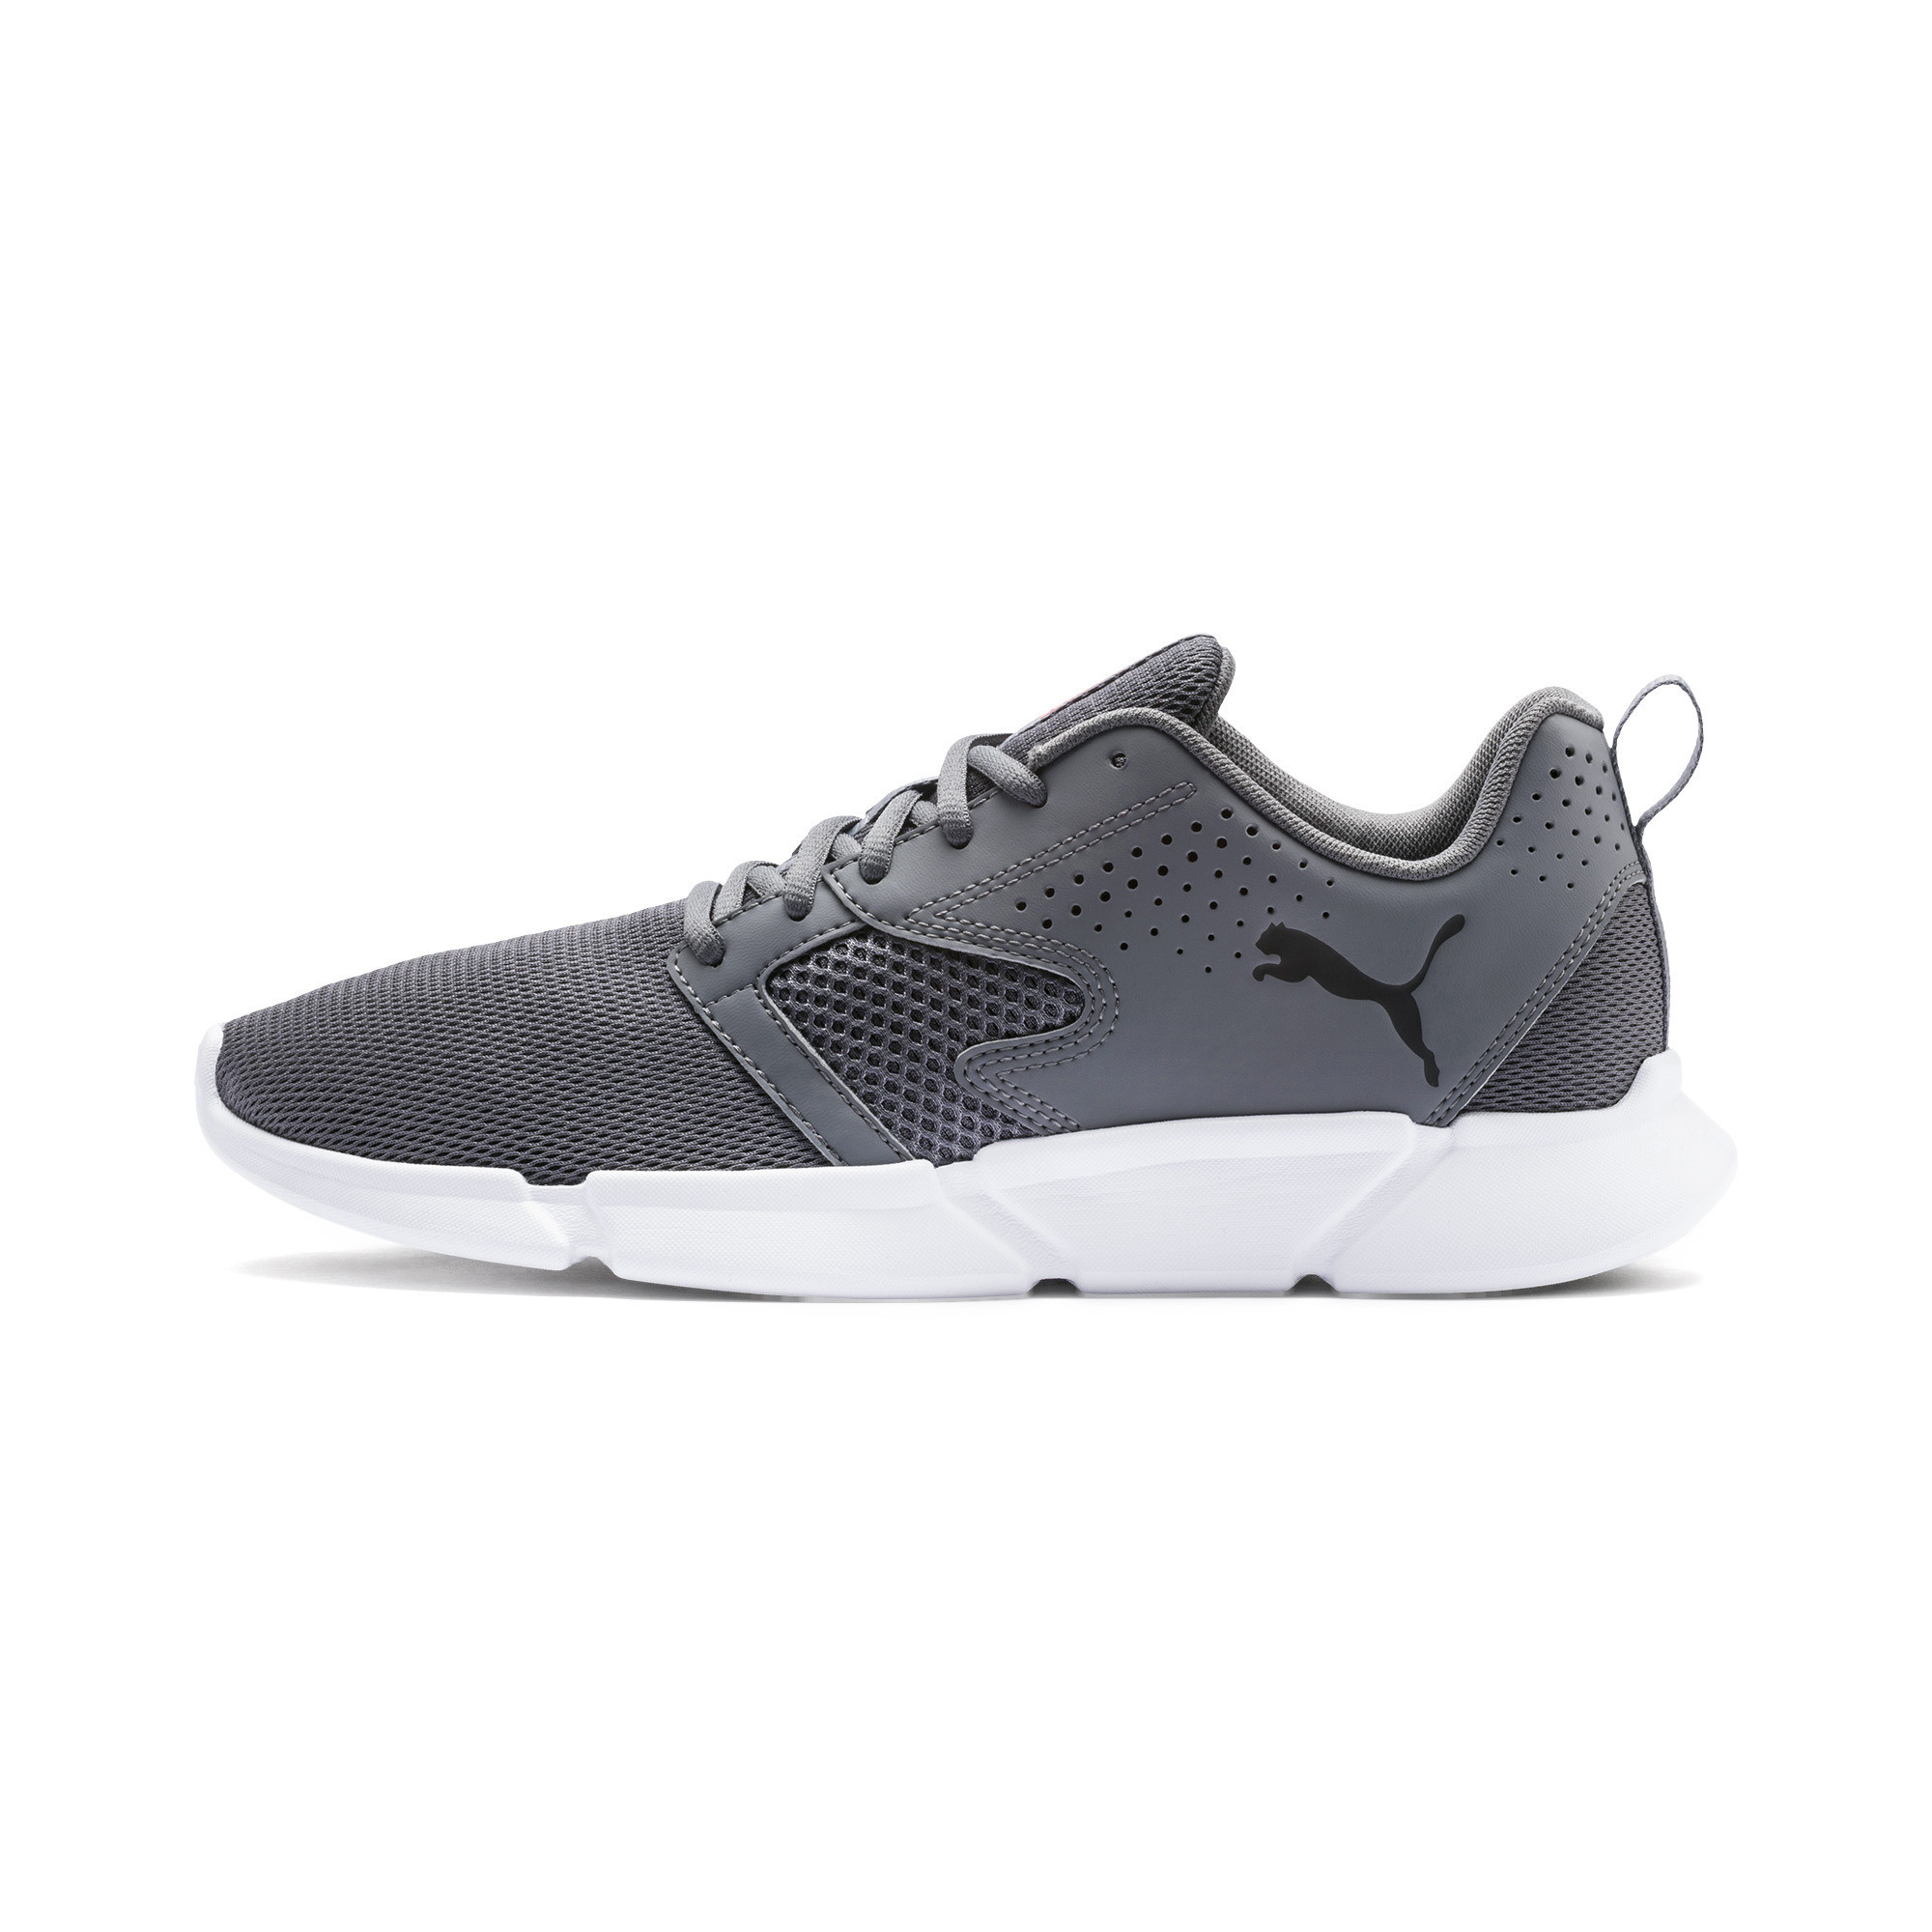 PUMA-INTERFLEX-Modern-Men-039-s-Sneakers-Unisex-Shoe-Running thumbnail 24